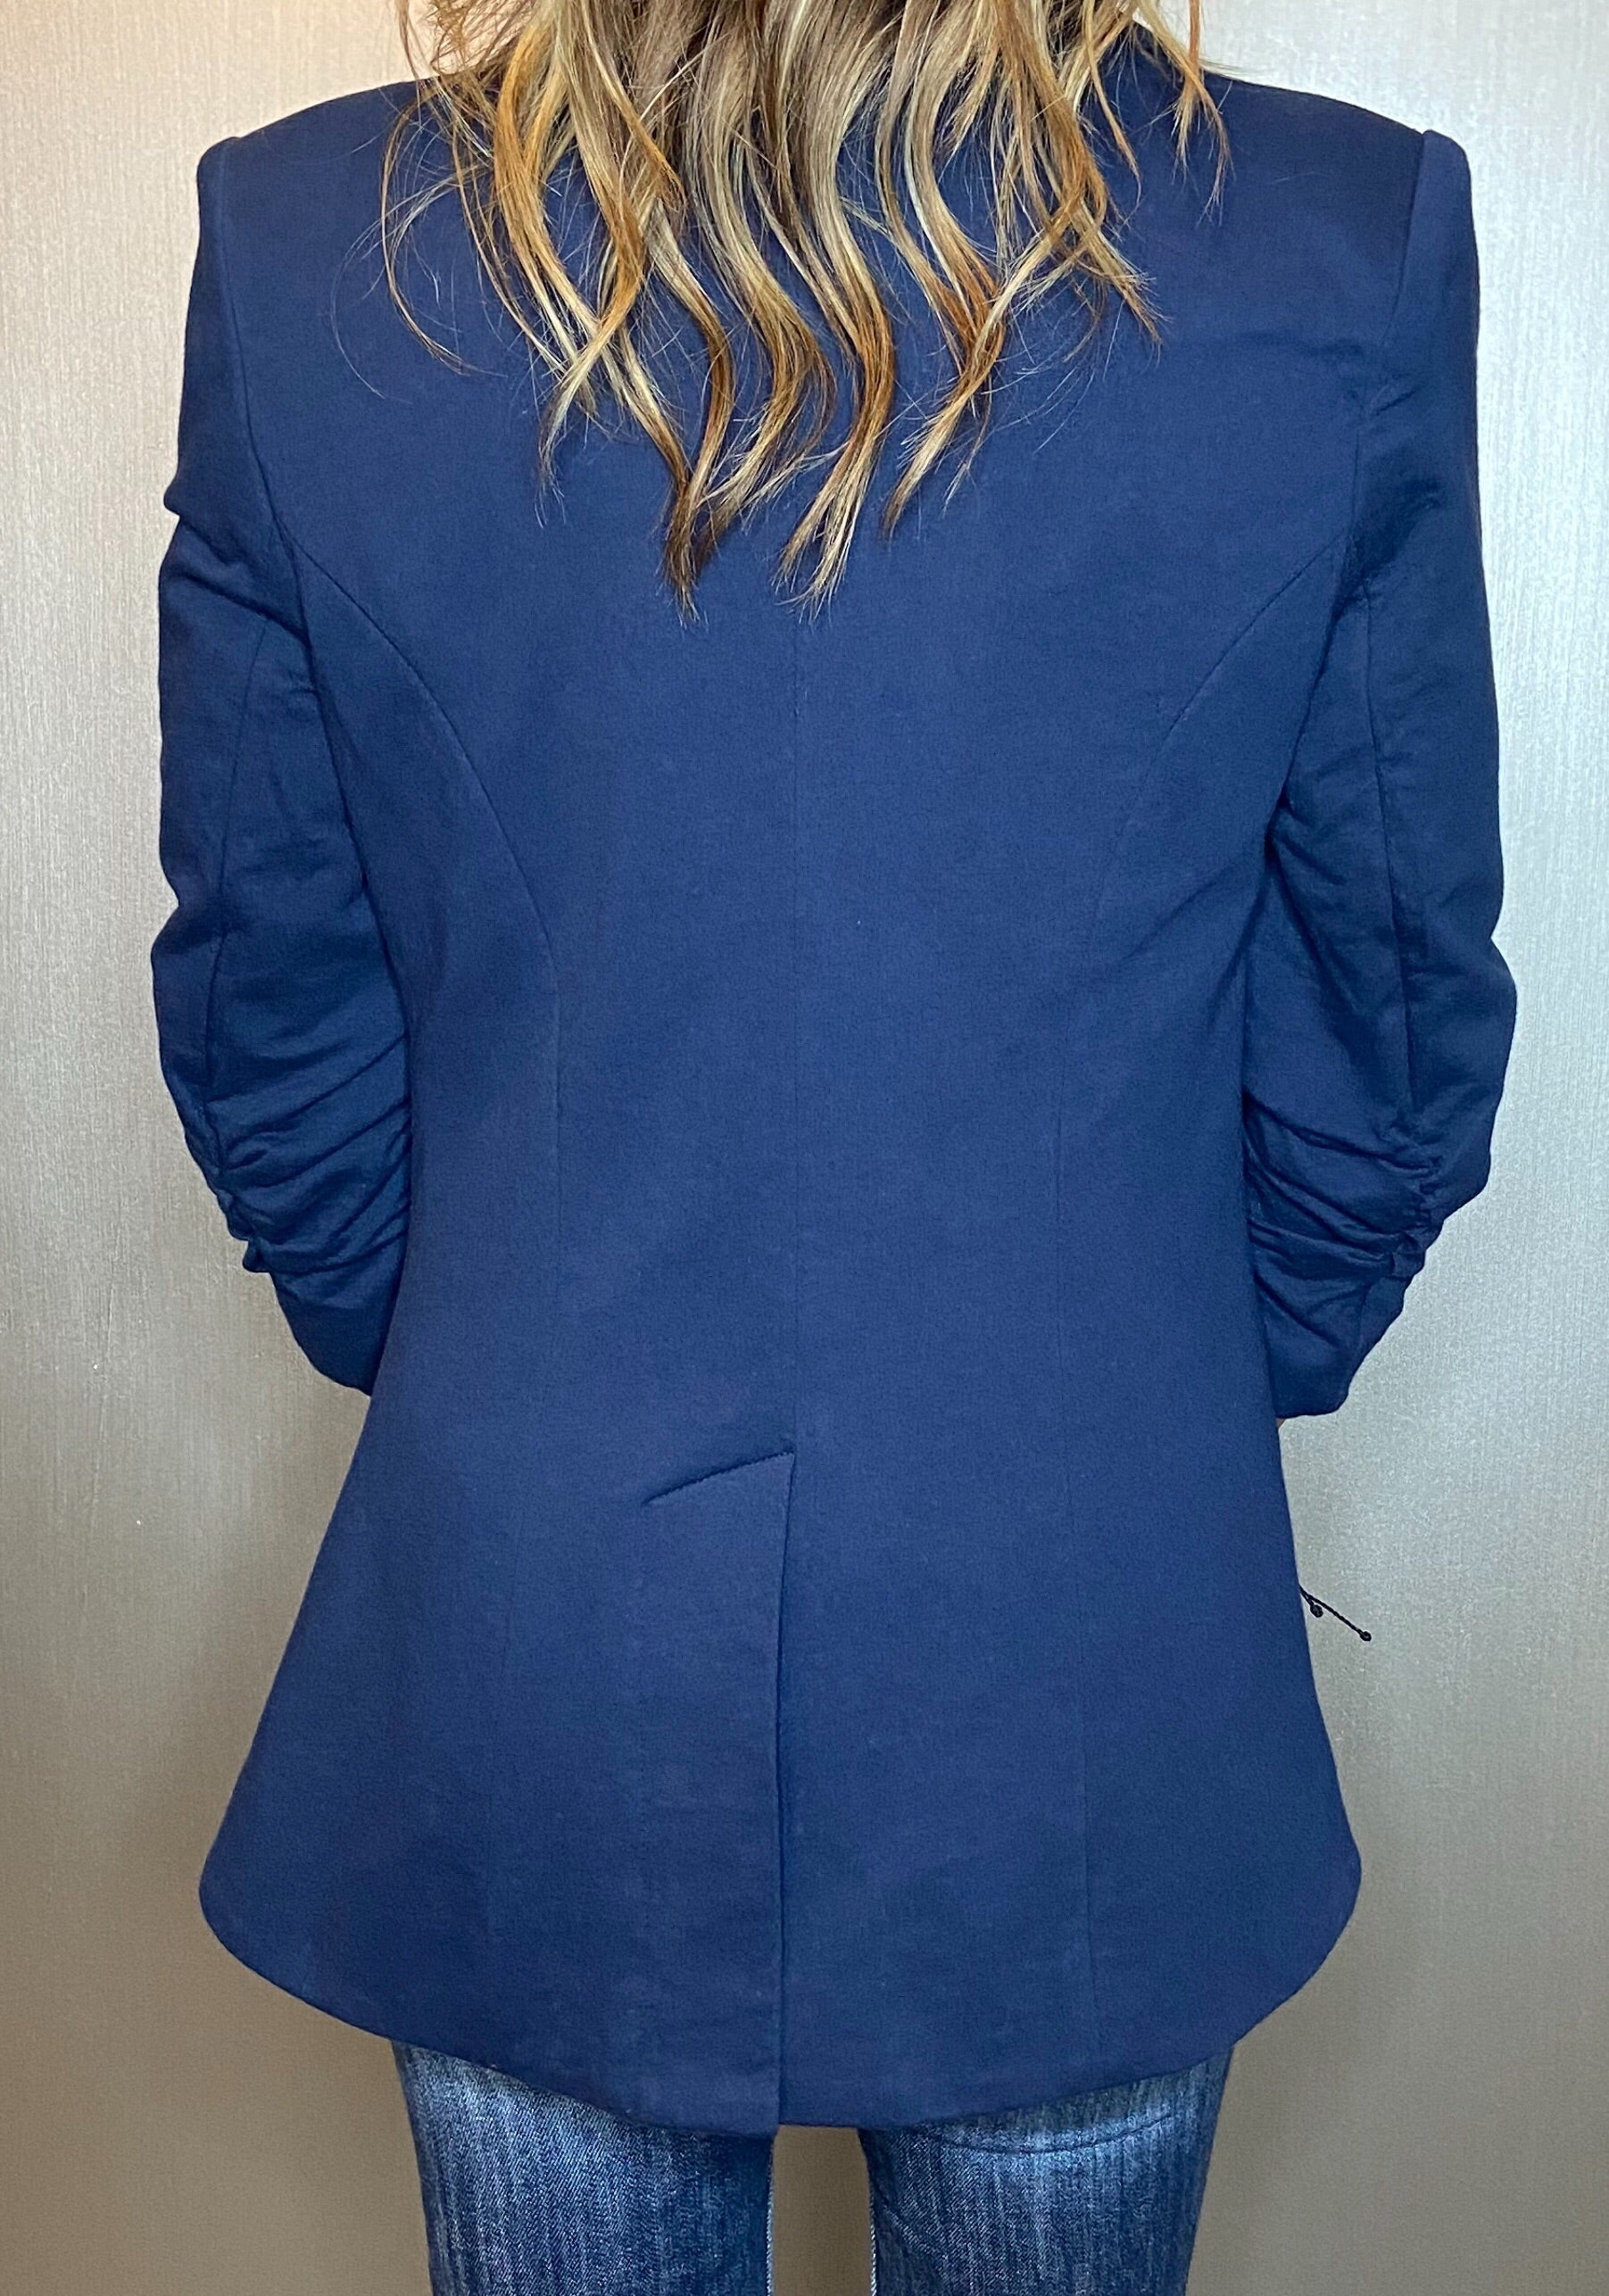 Cotton Blazer (multiple color options)